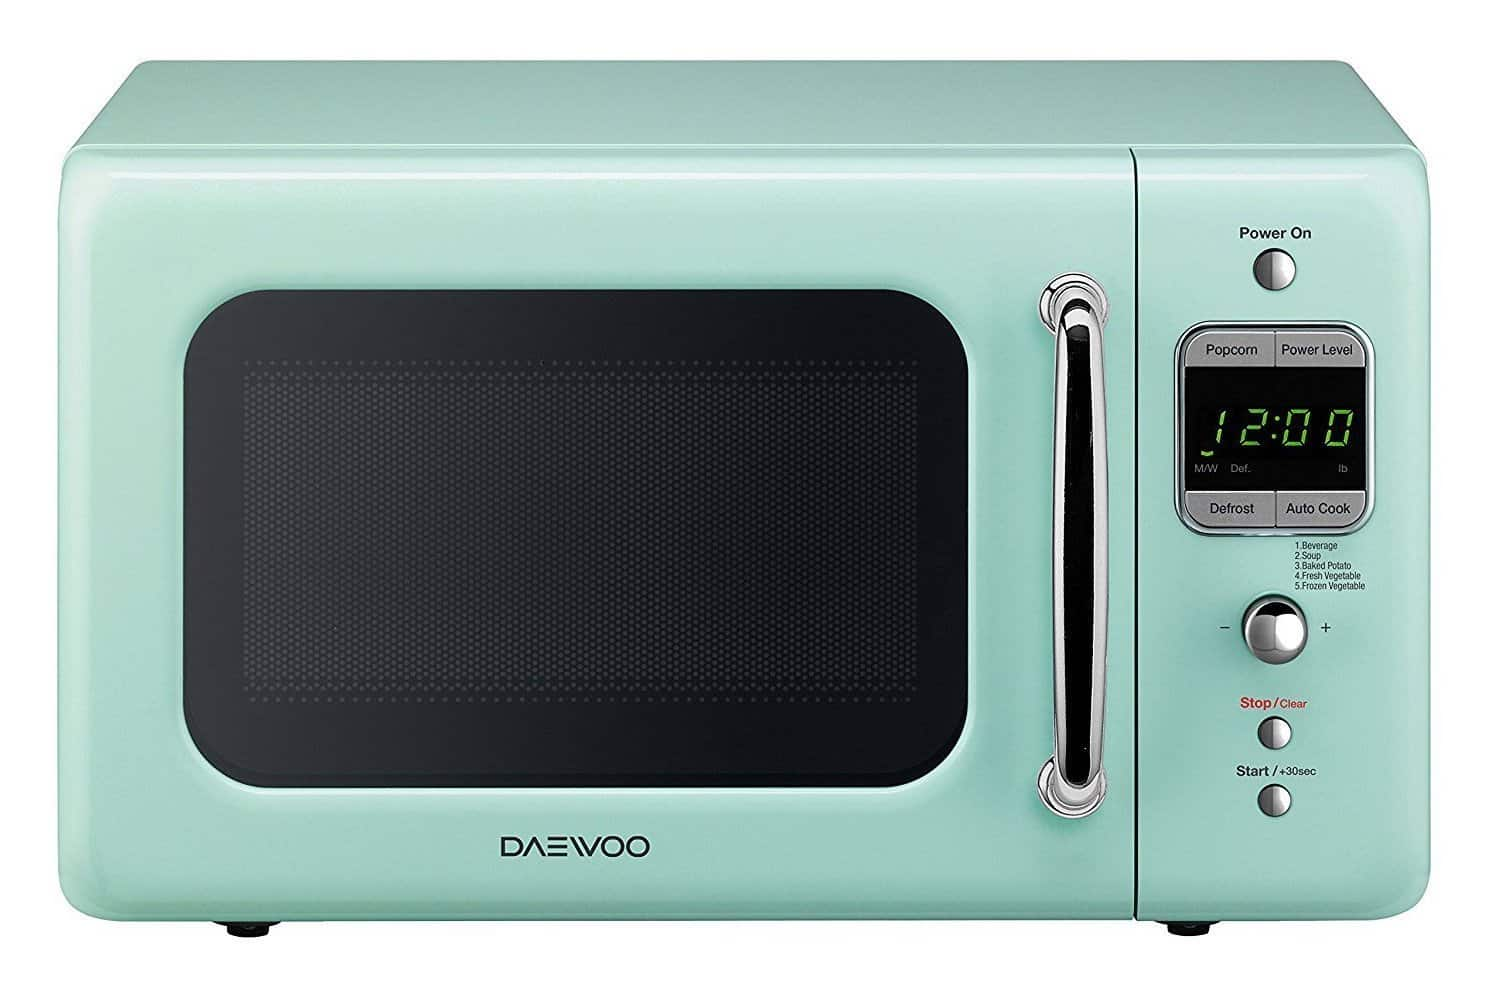 11 Best Small Microwave Oven Options for 2018